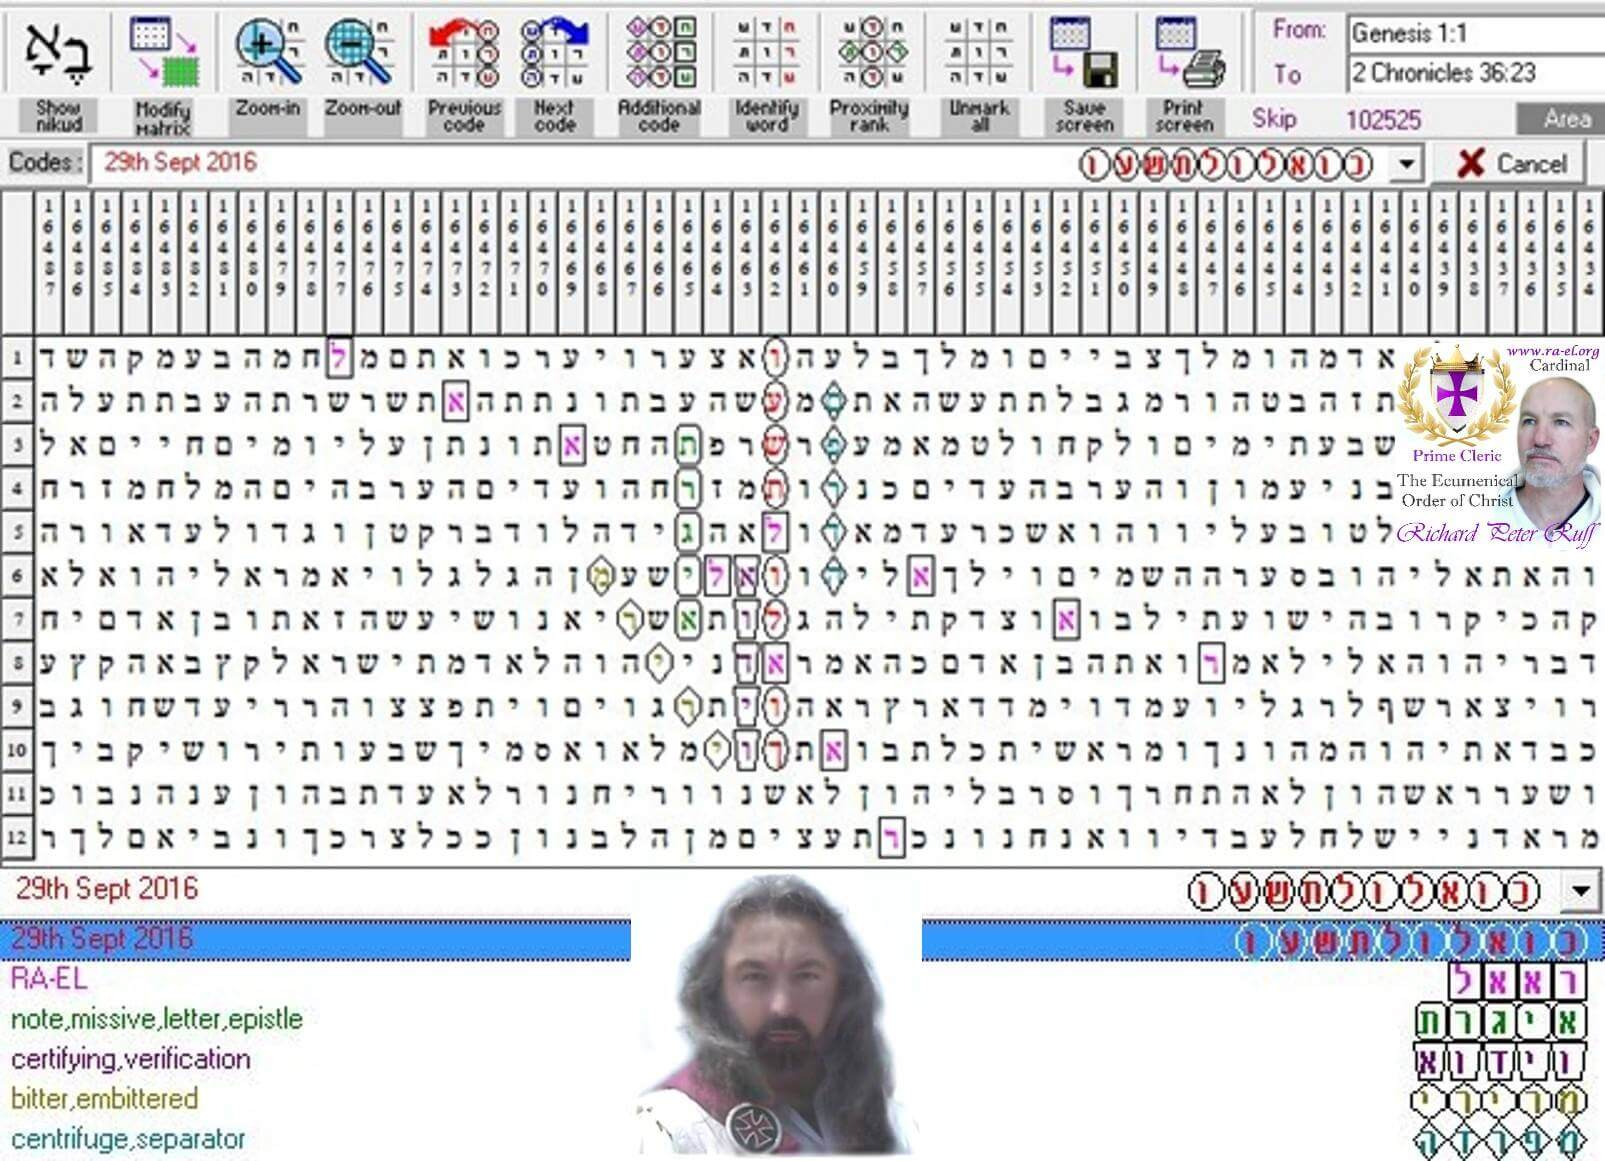 Torah Code Discovered by Richard Ruff